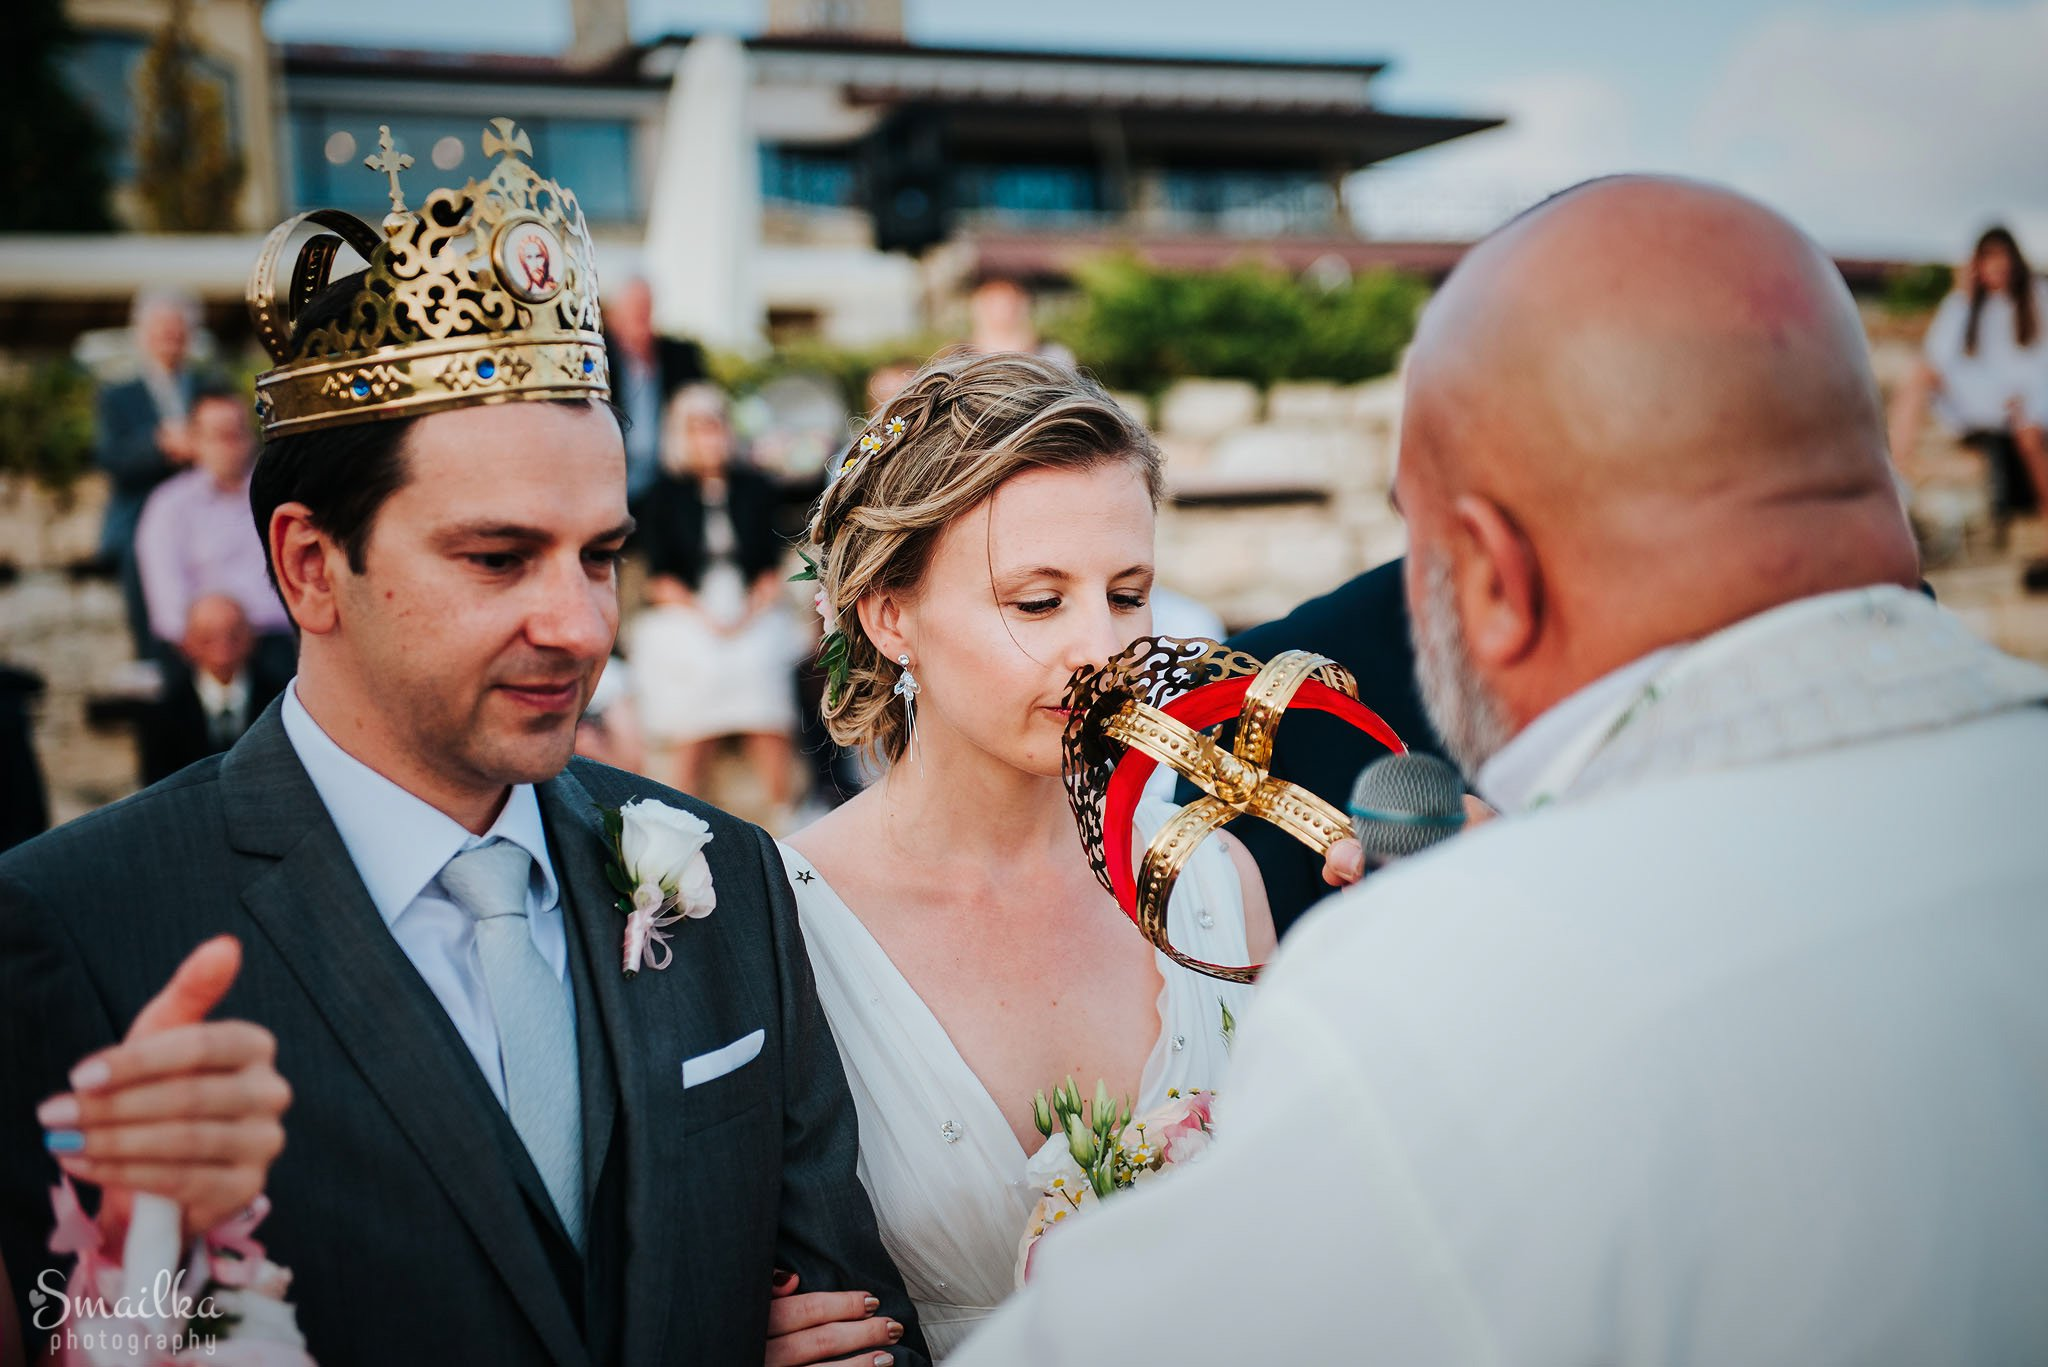 Wedding crowns at a wedding ceremony at Black Sea Rama